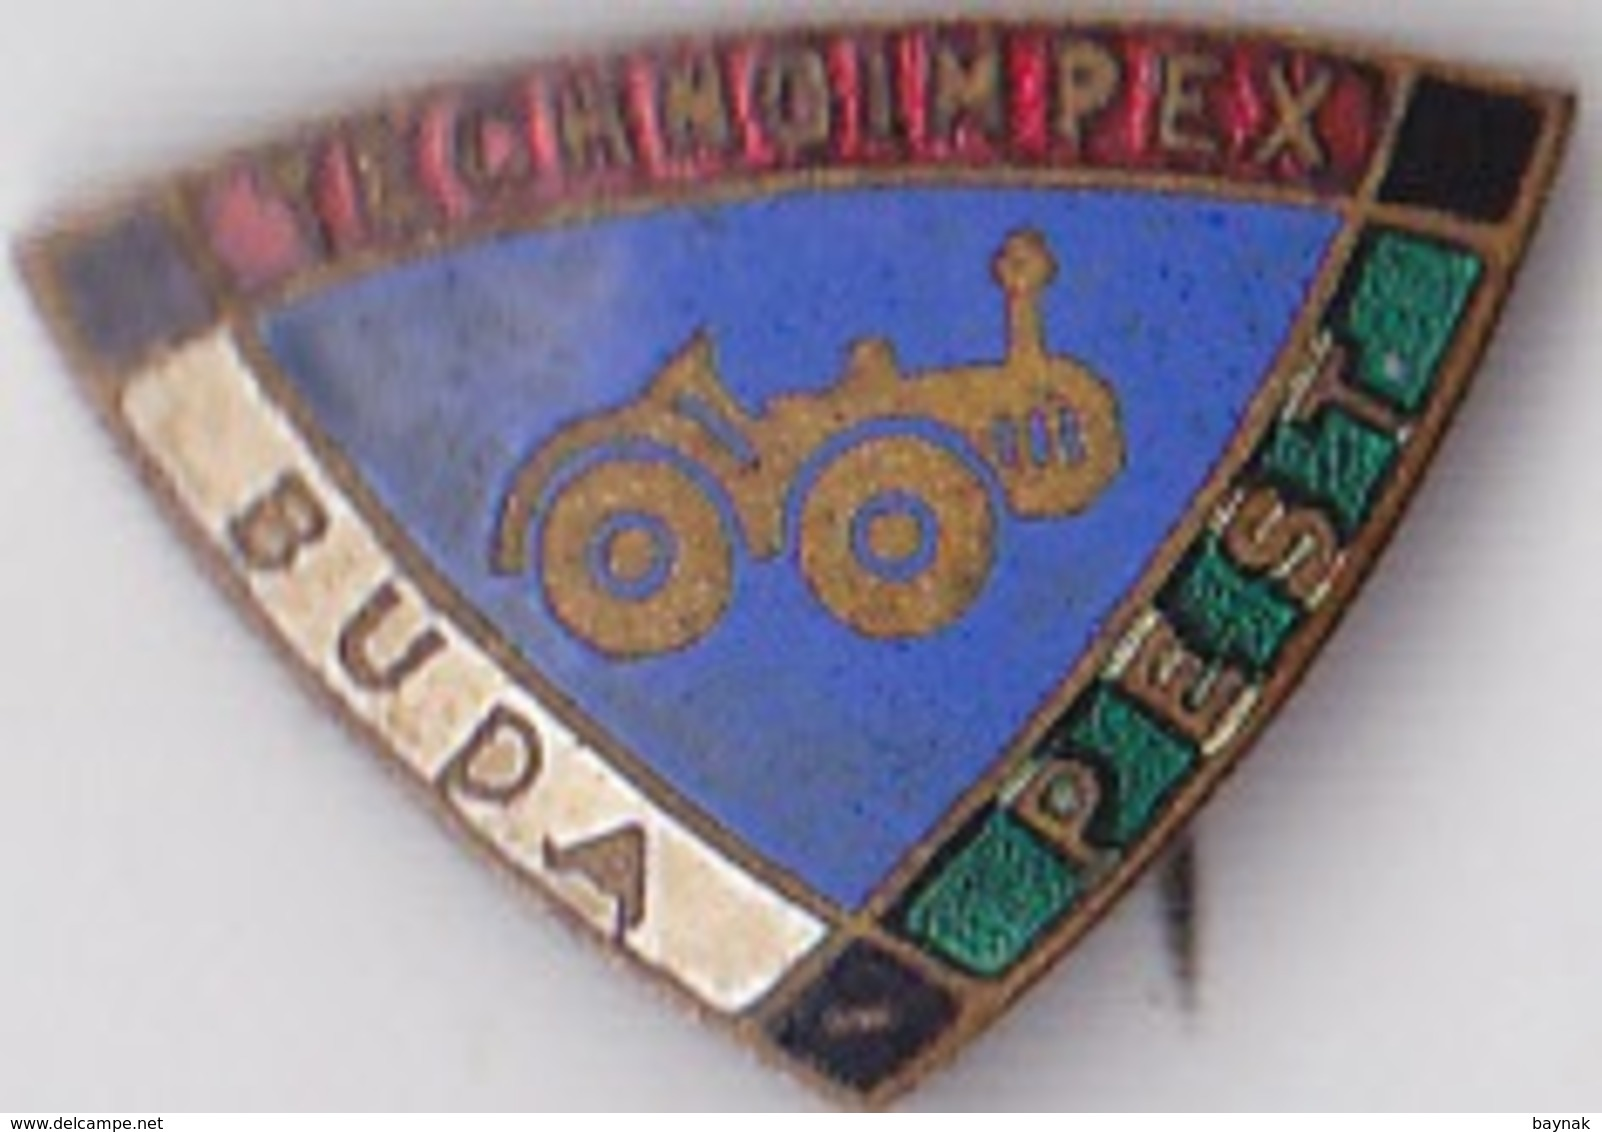 OLD PIN  --   HUNGARY --  TECHNOIMPEX  --  BUDAPEST  --  TRACTOR - Pin's & Anstecknadeln